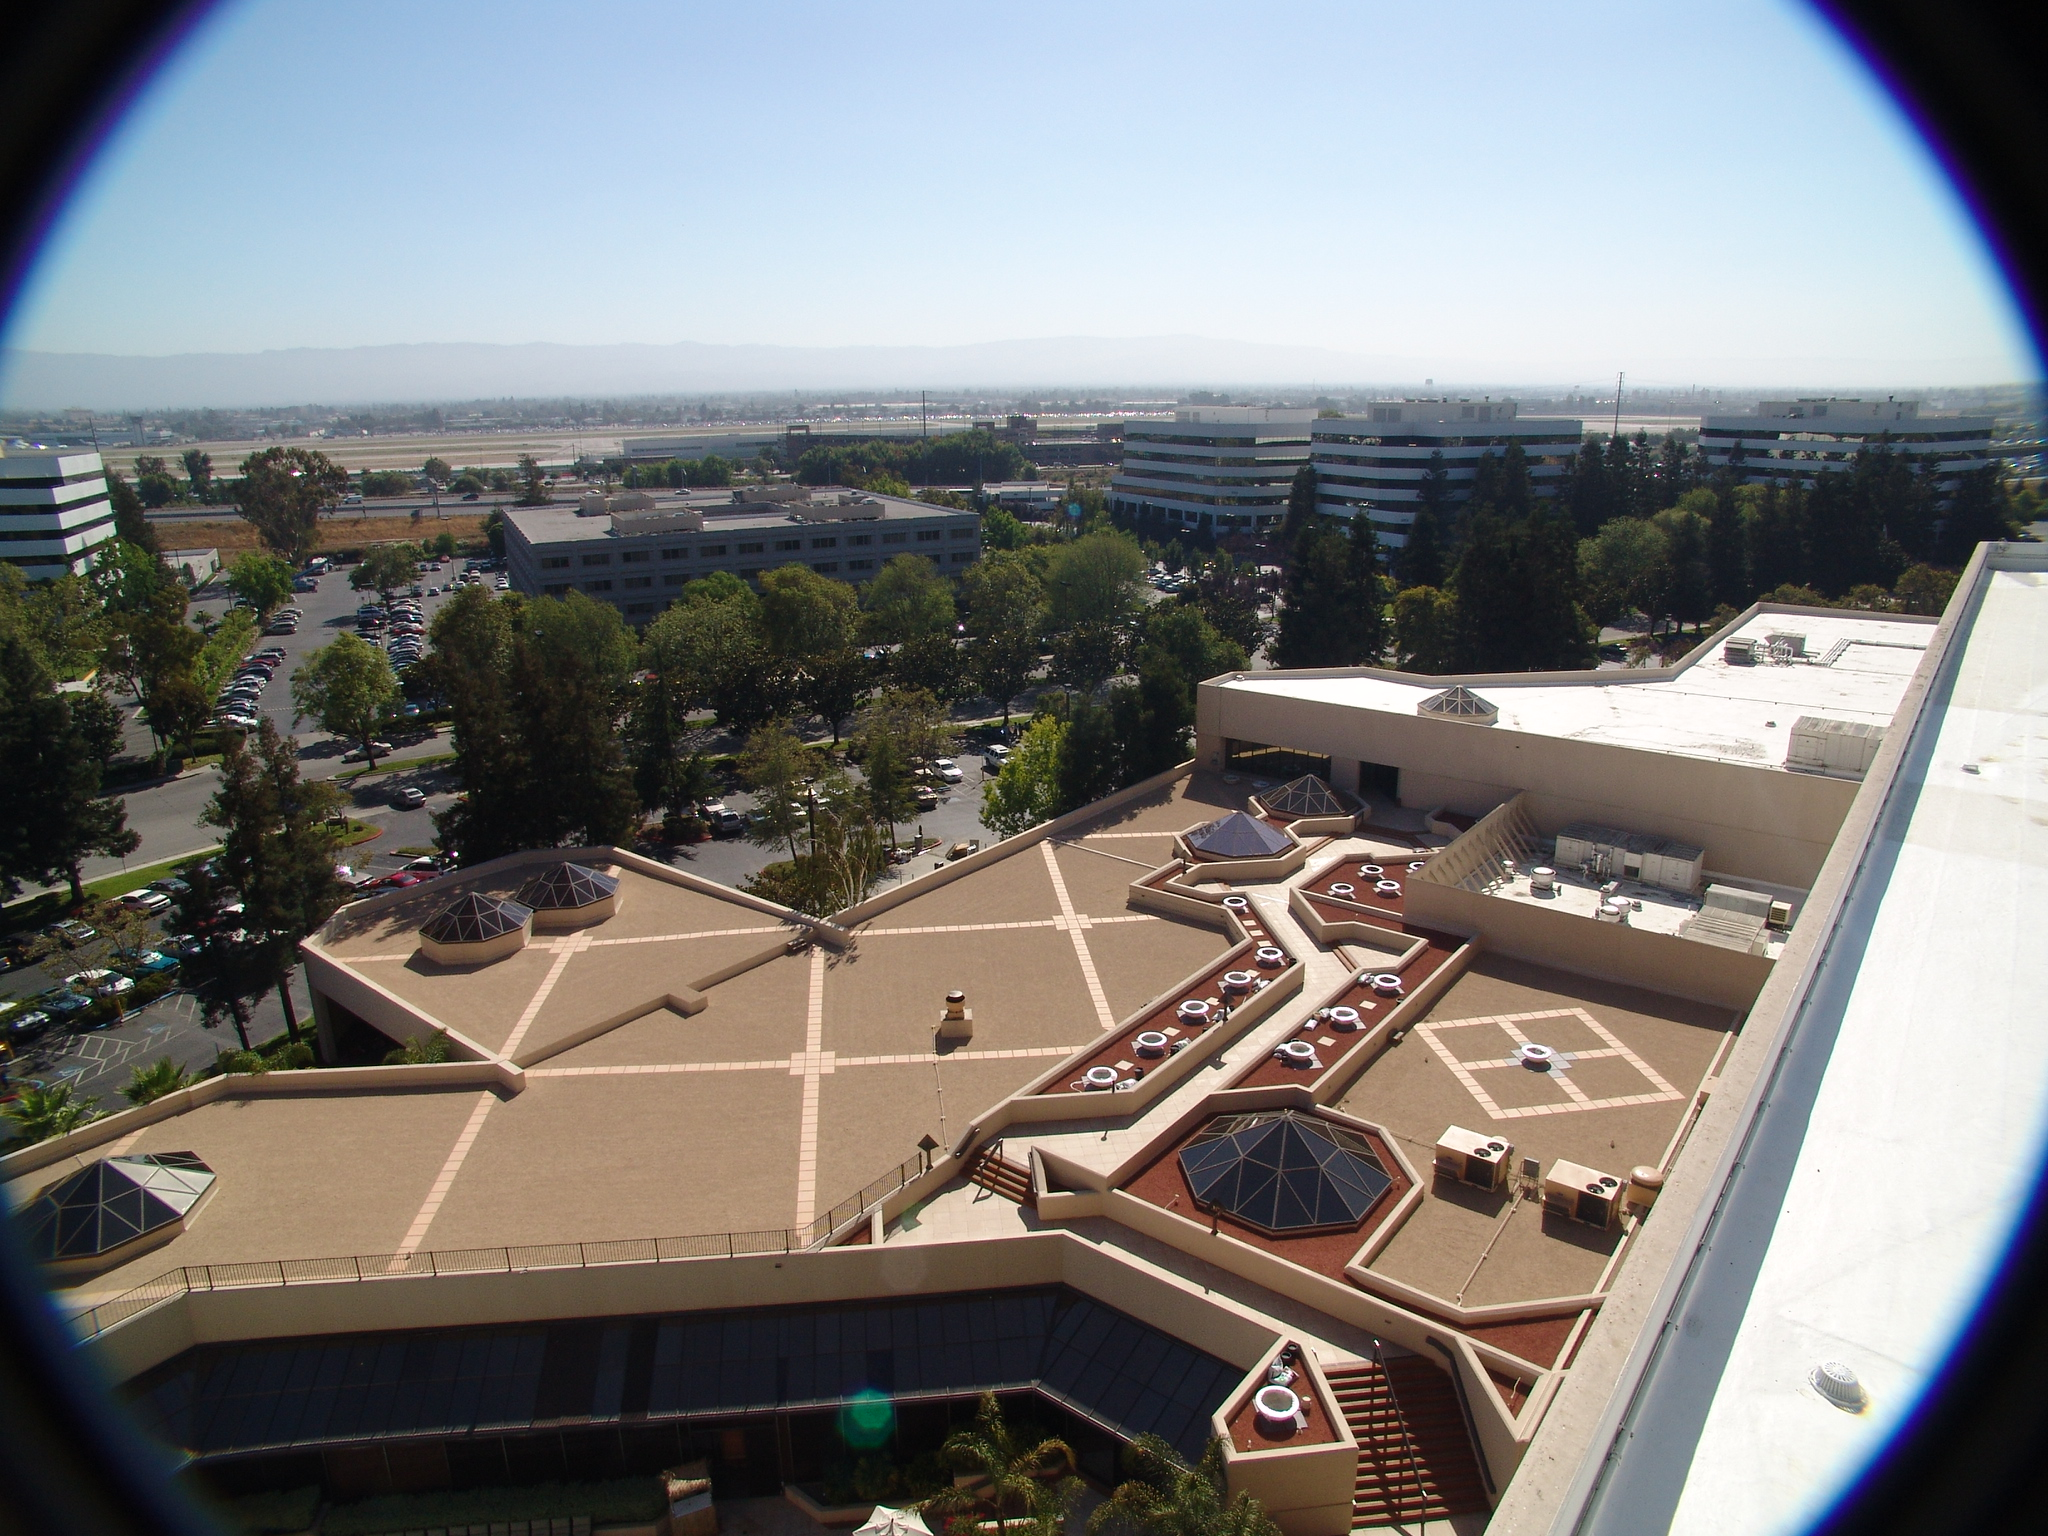 New Construction Roofing | New Construction Roofing in California | New Construction Roofing in Nevada | New Construction Roofing in Arizona